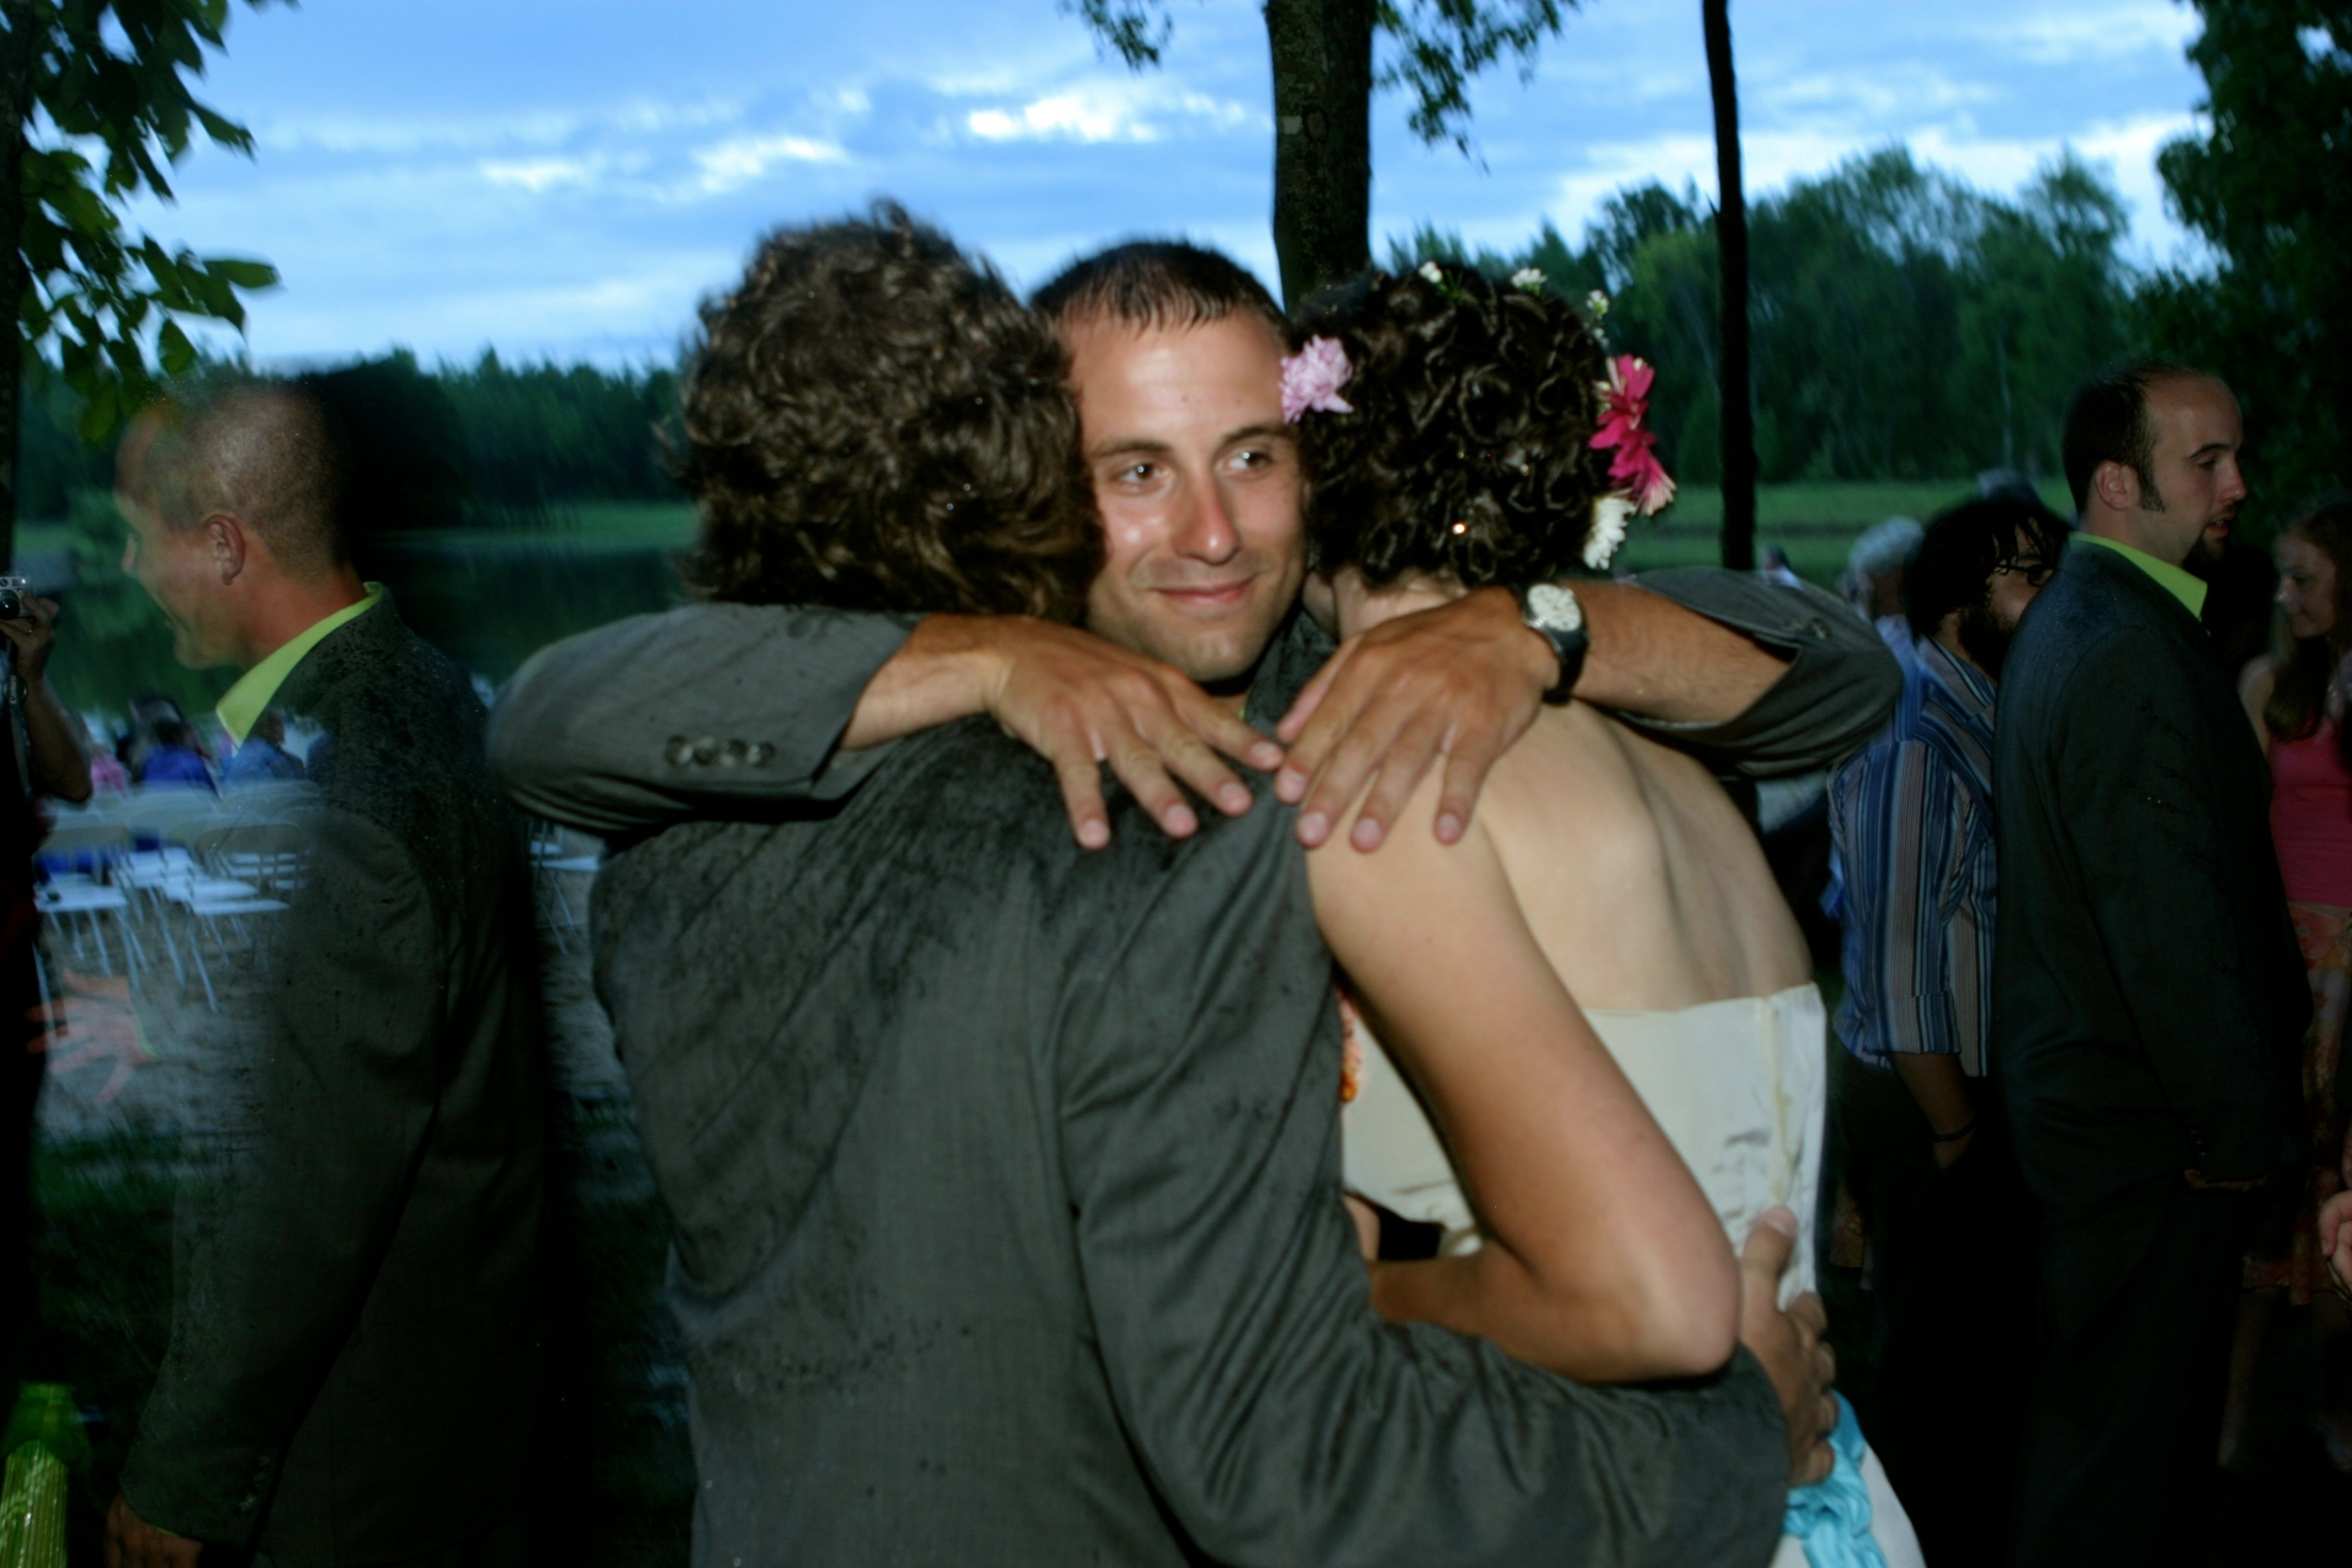 With Chris Bristow after the wedding... note how wet John is :)